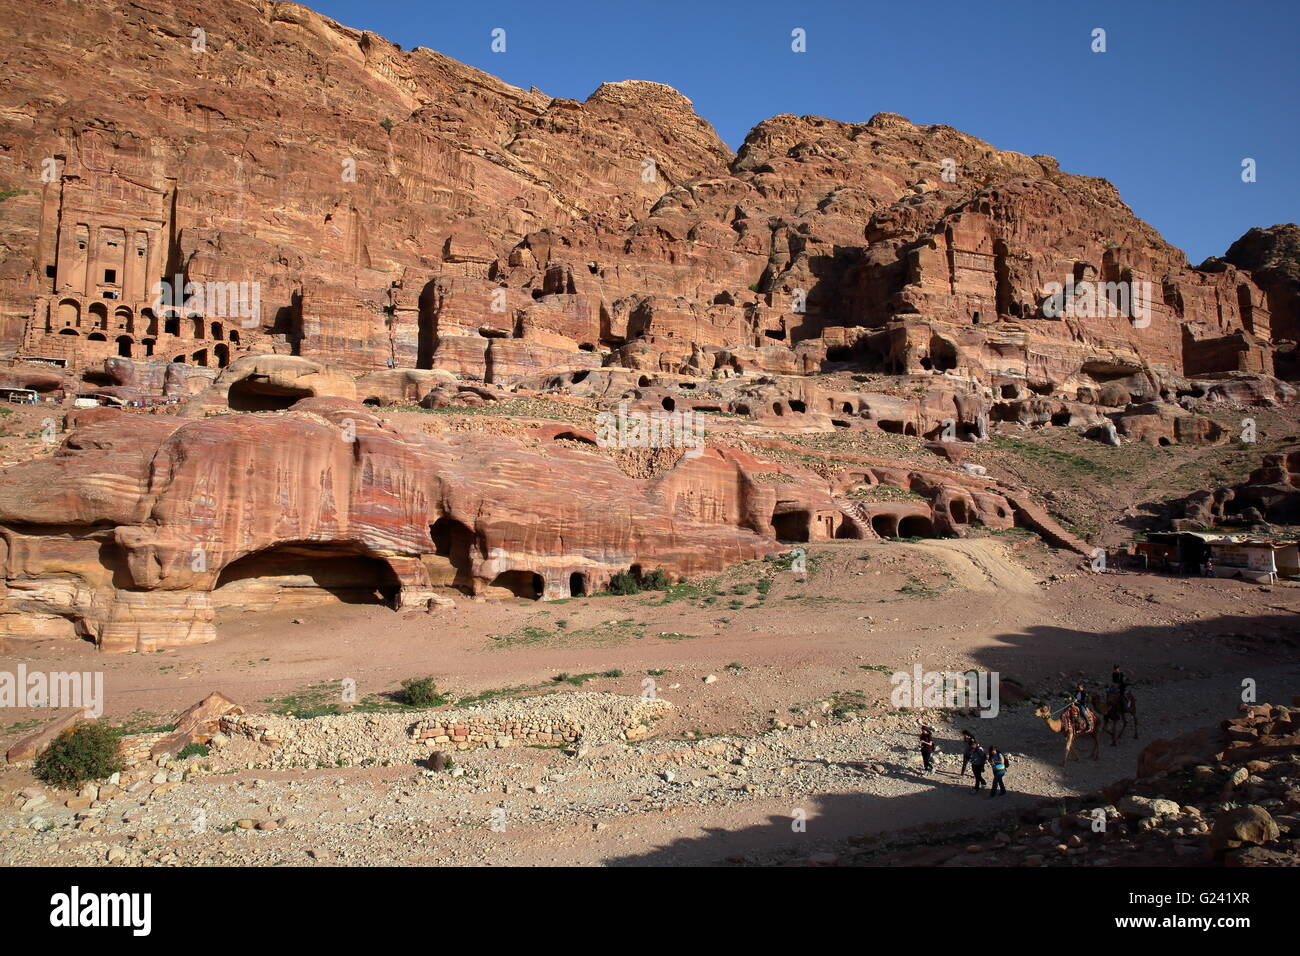 General view of the Royal Tombs in Petra, Jordan, The Urn Tomb on the left side Stock Photo